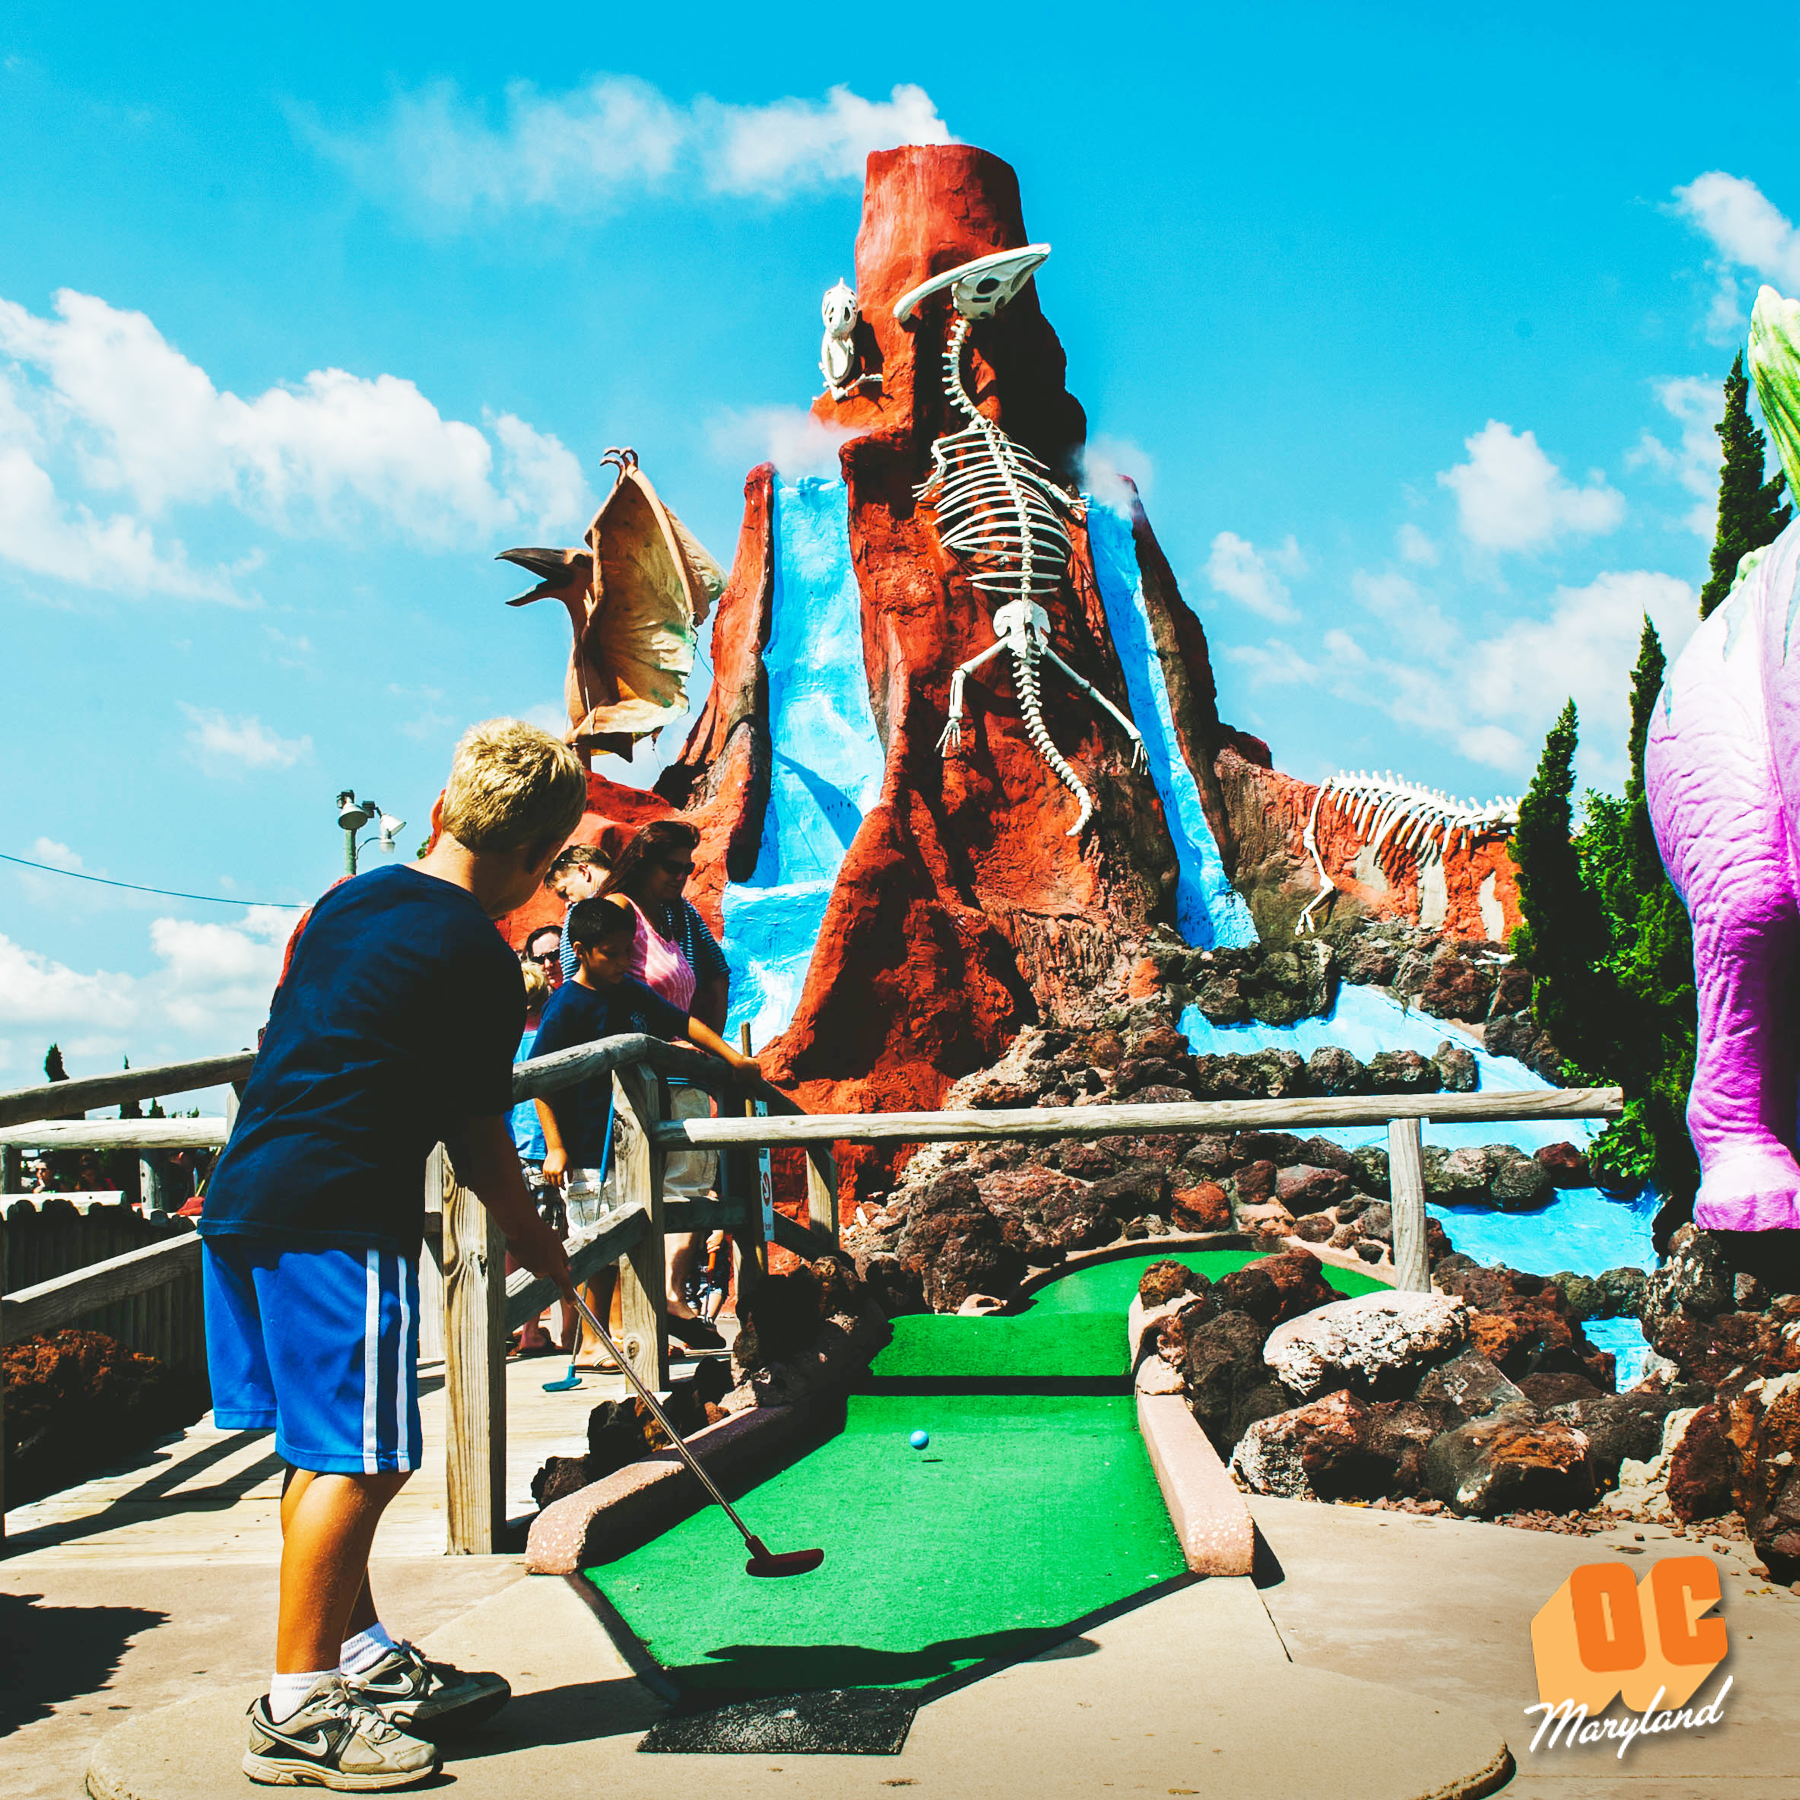 Mini Golf in Ocean City MD minigolf summer